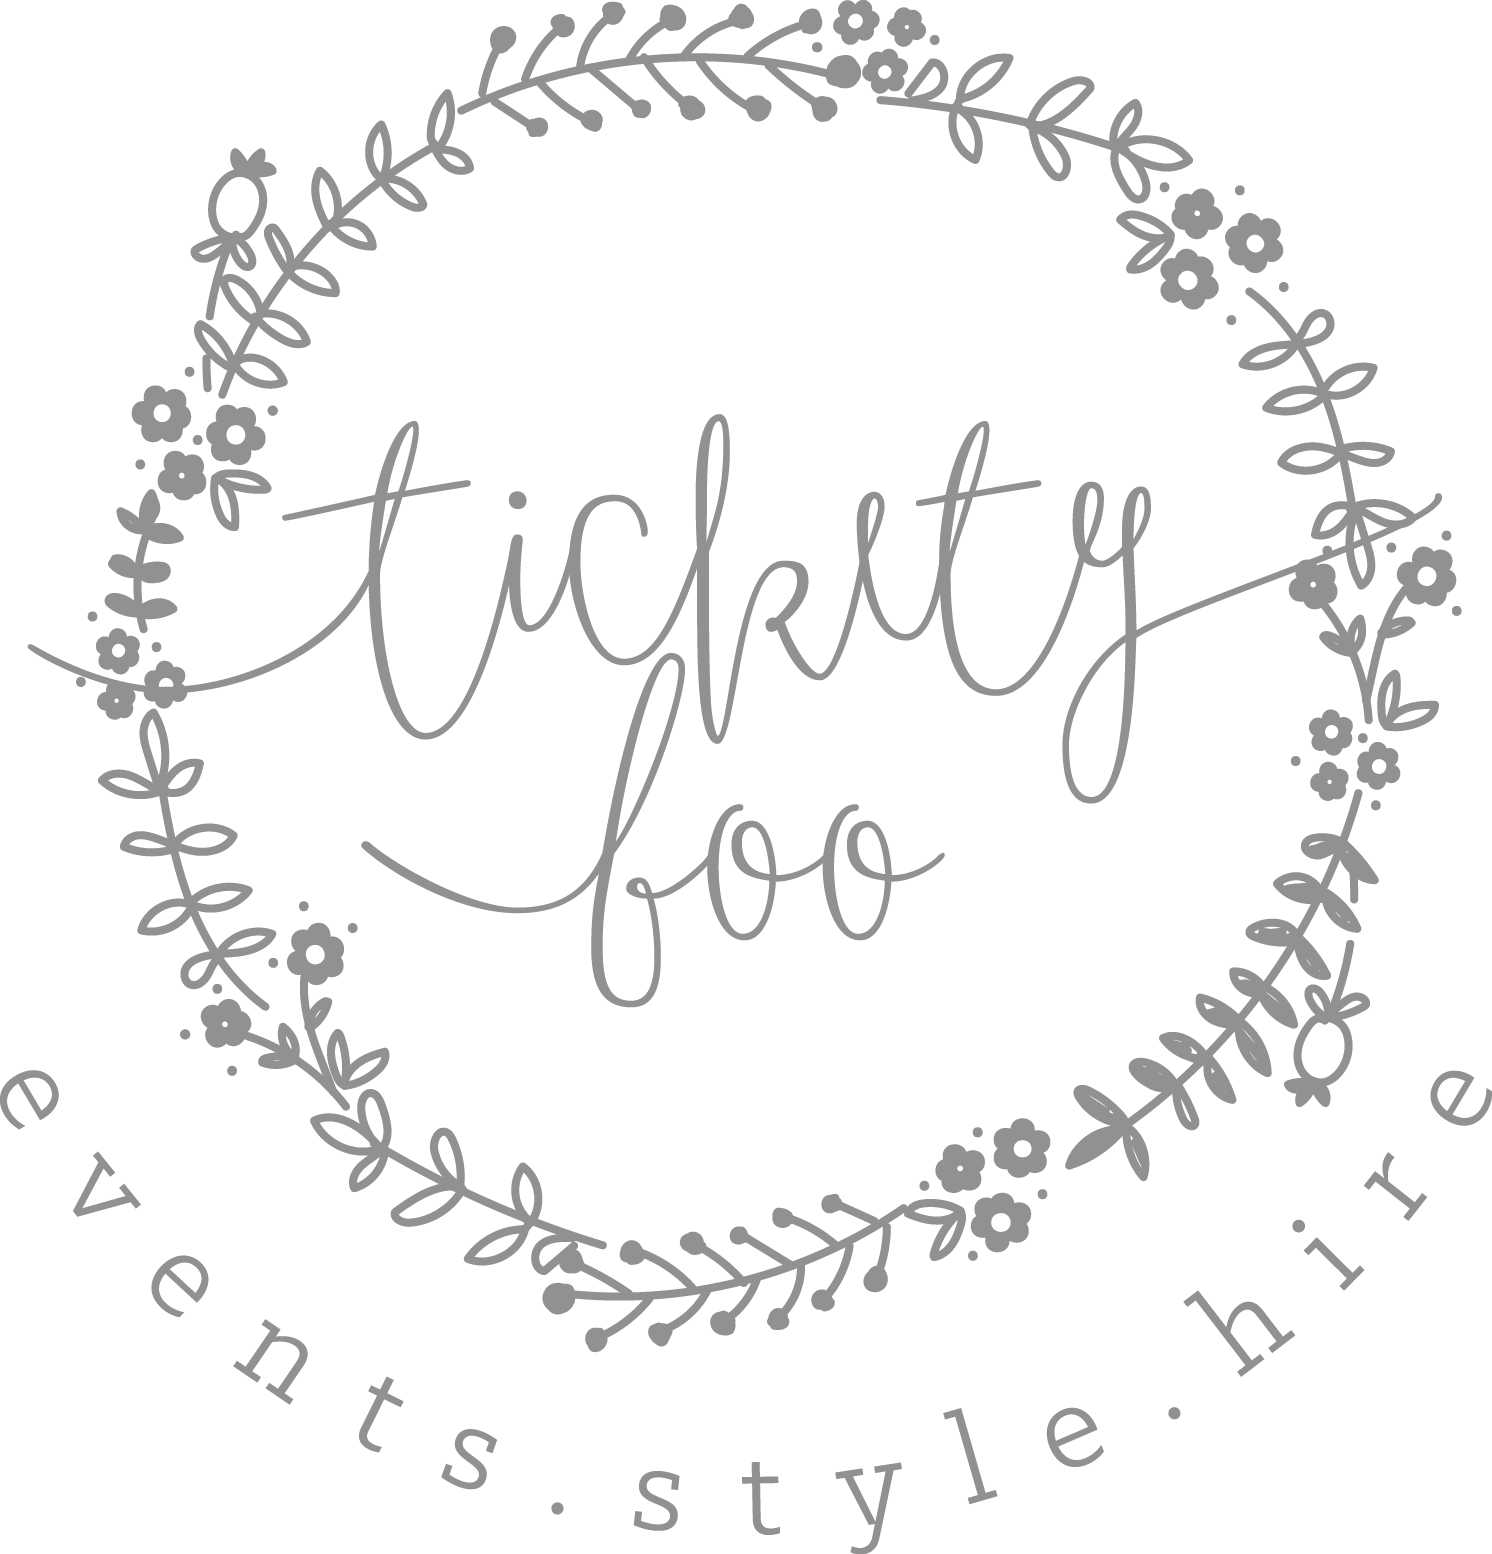 Tickety Boo Events